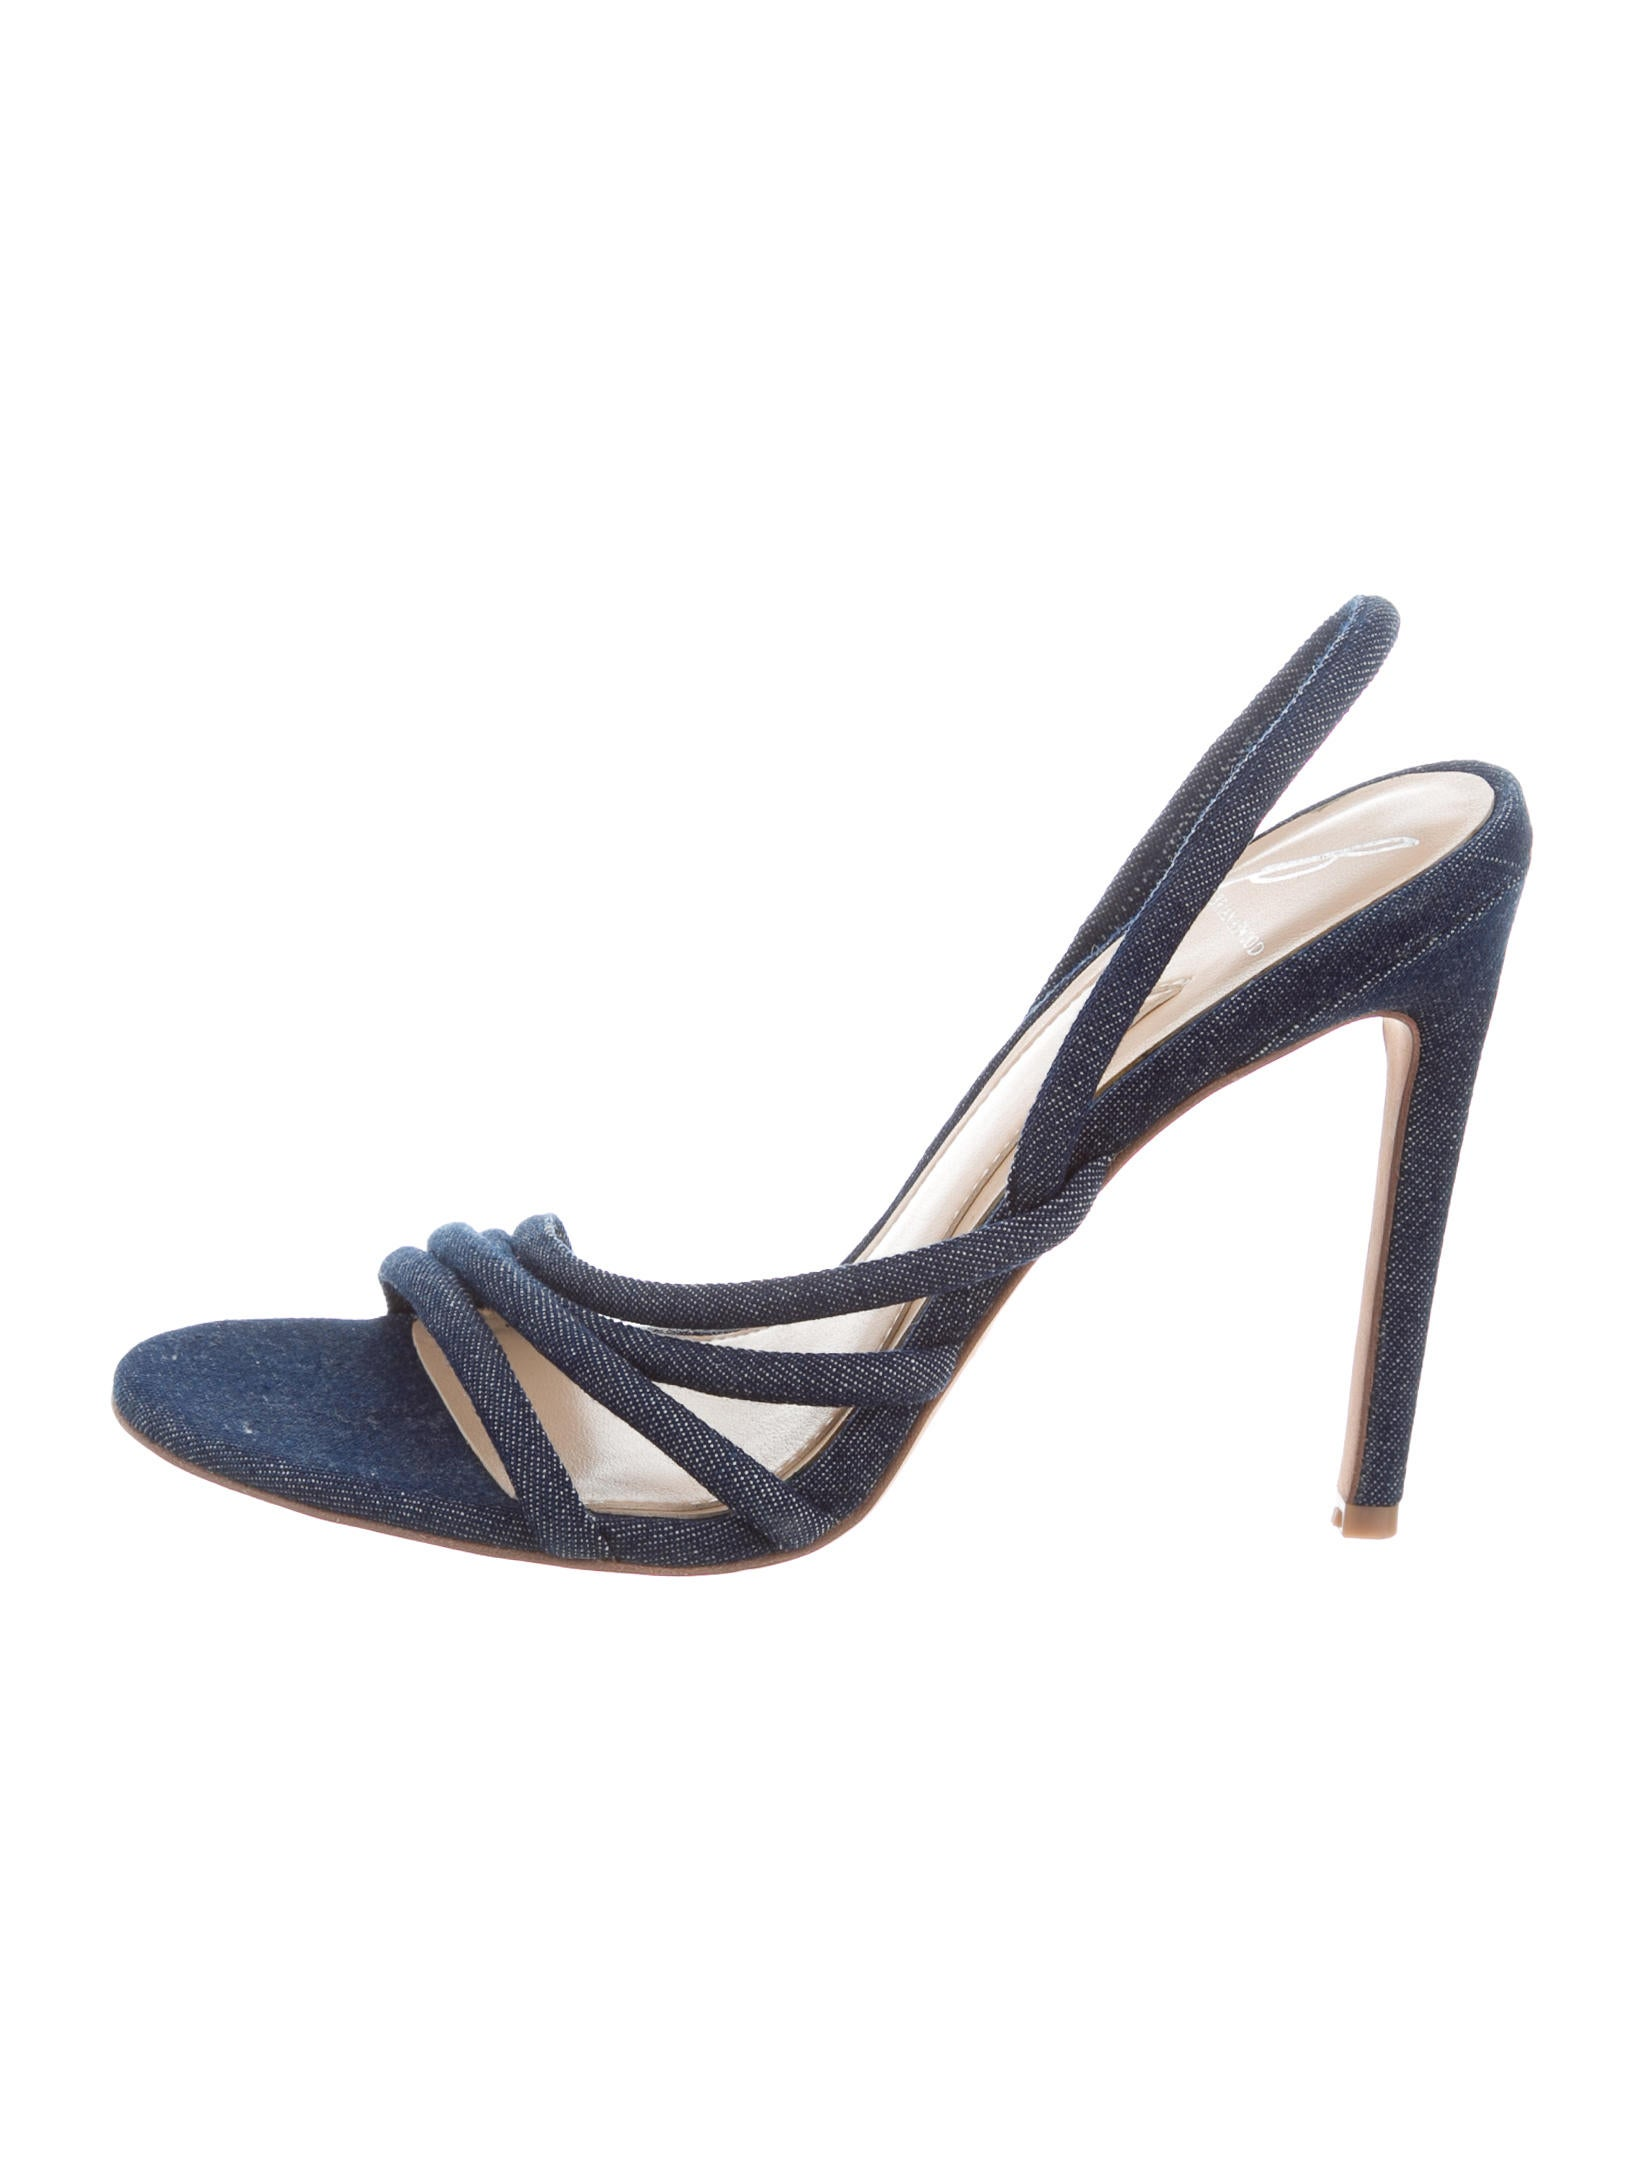 B Brian Atwood Denim Multistrap Sandals 100% authentic cheap price 7C2wh